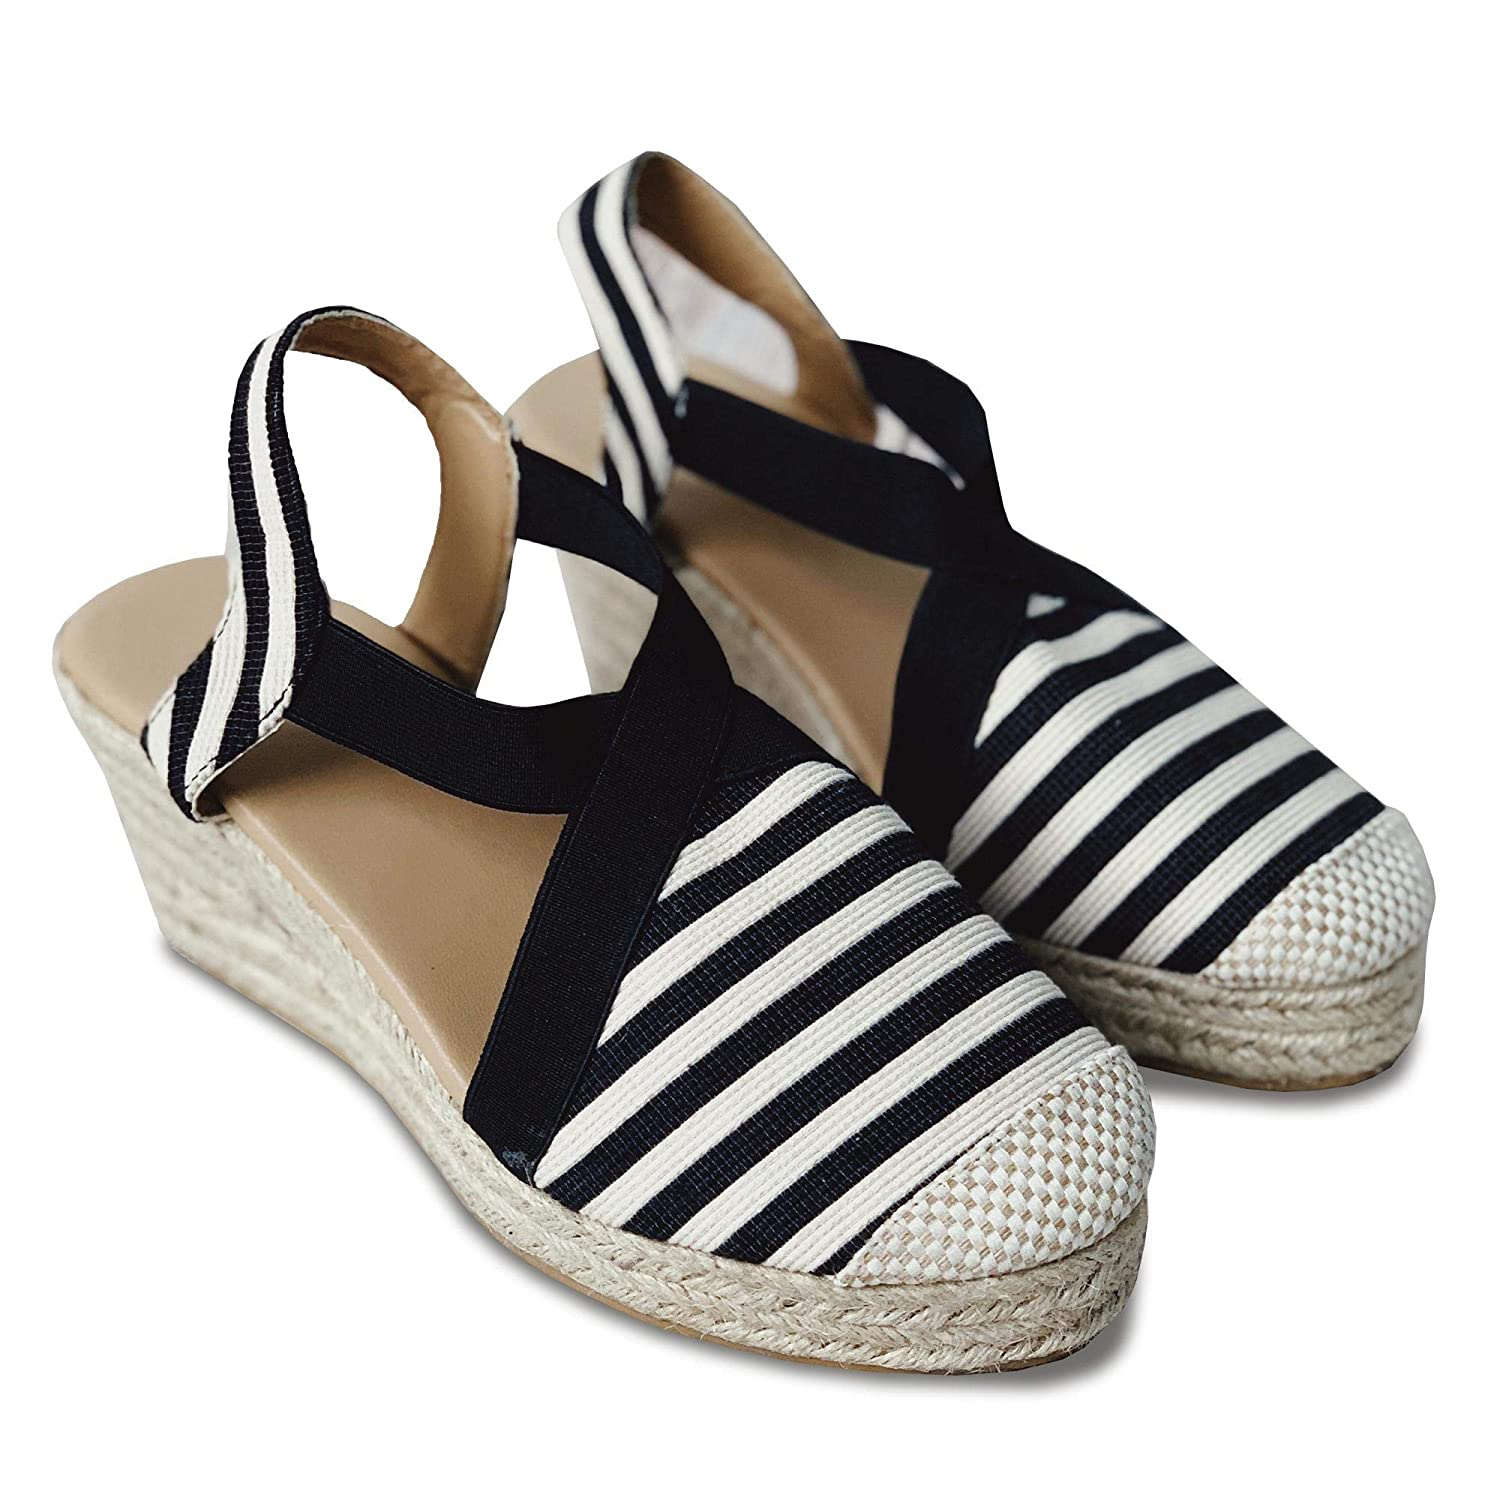 cb92741cfb411 Womens Closed Toe Espadrilles Low Wedges Heel Shoes Elastic Ankle Strap  Sandals